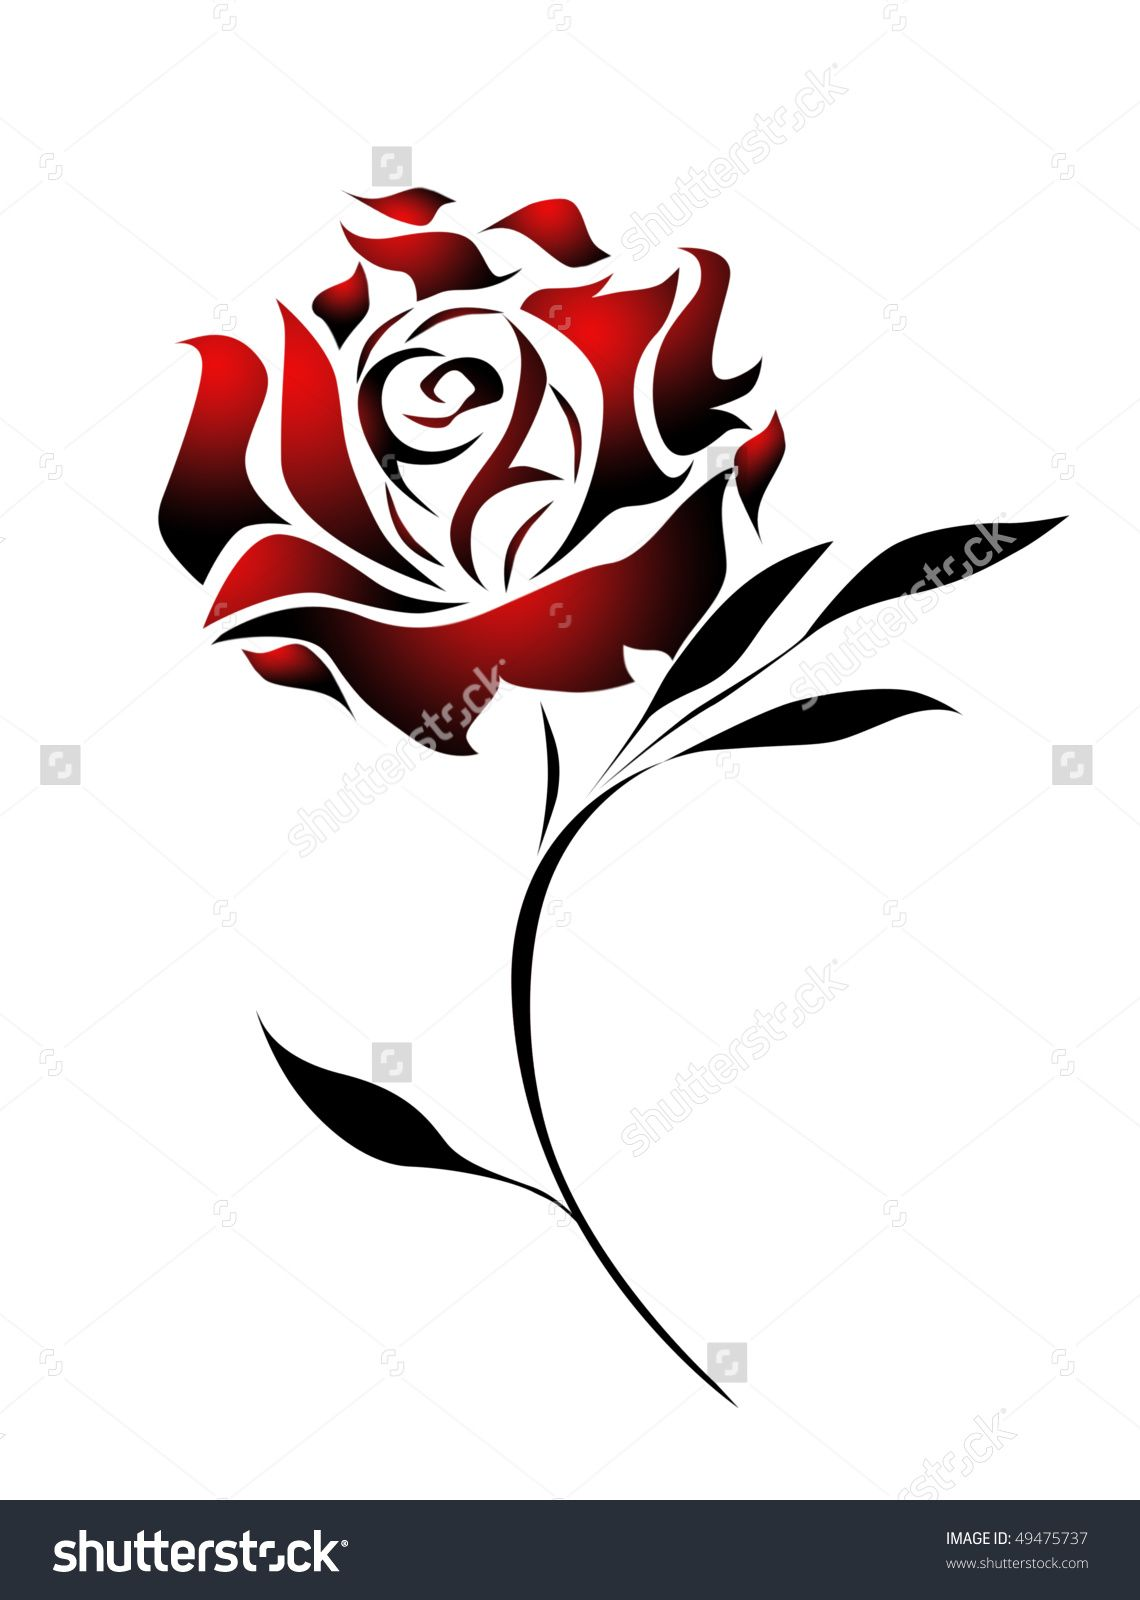 red rose tattoo - Google Search | dragon | Pinterest | Rosen skizze ...